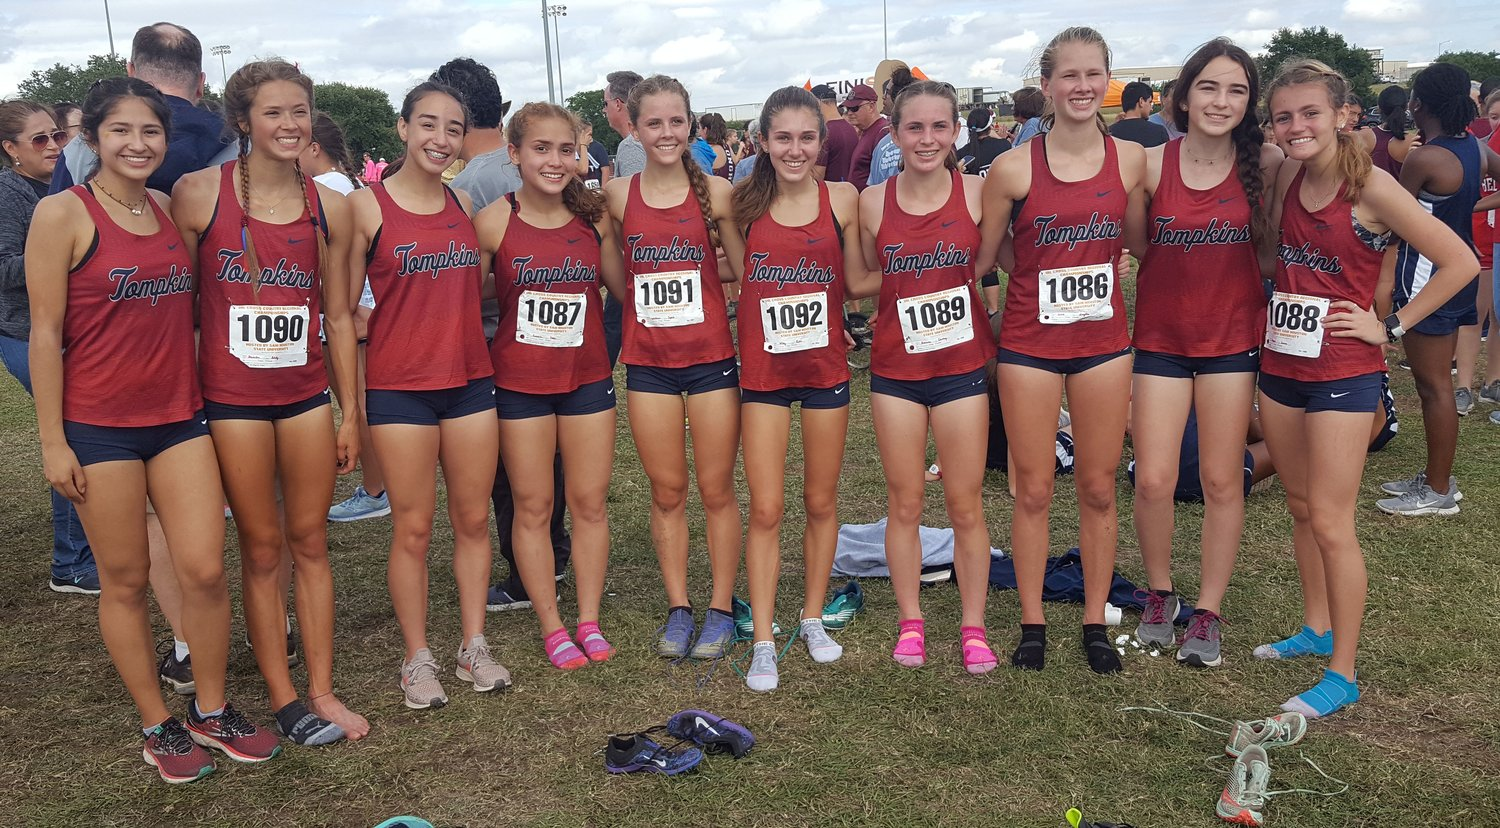 Tompkins girls: From left to right, Angelica Juarez, Addison Stevenson, Maria Giler, Paula Guevera, Sophia Welkener, Katie Wiley, Courtney Richman, Hayden Gold, Marisa Marinchak and Laura Orgeron.